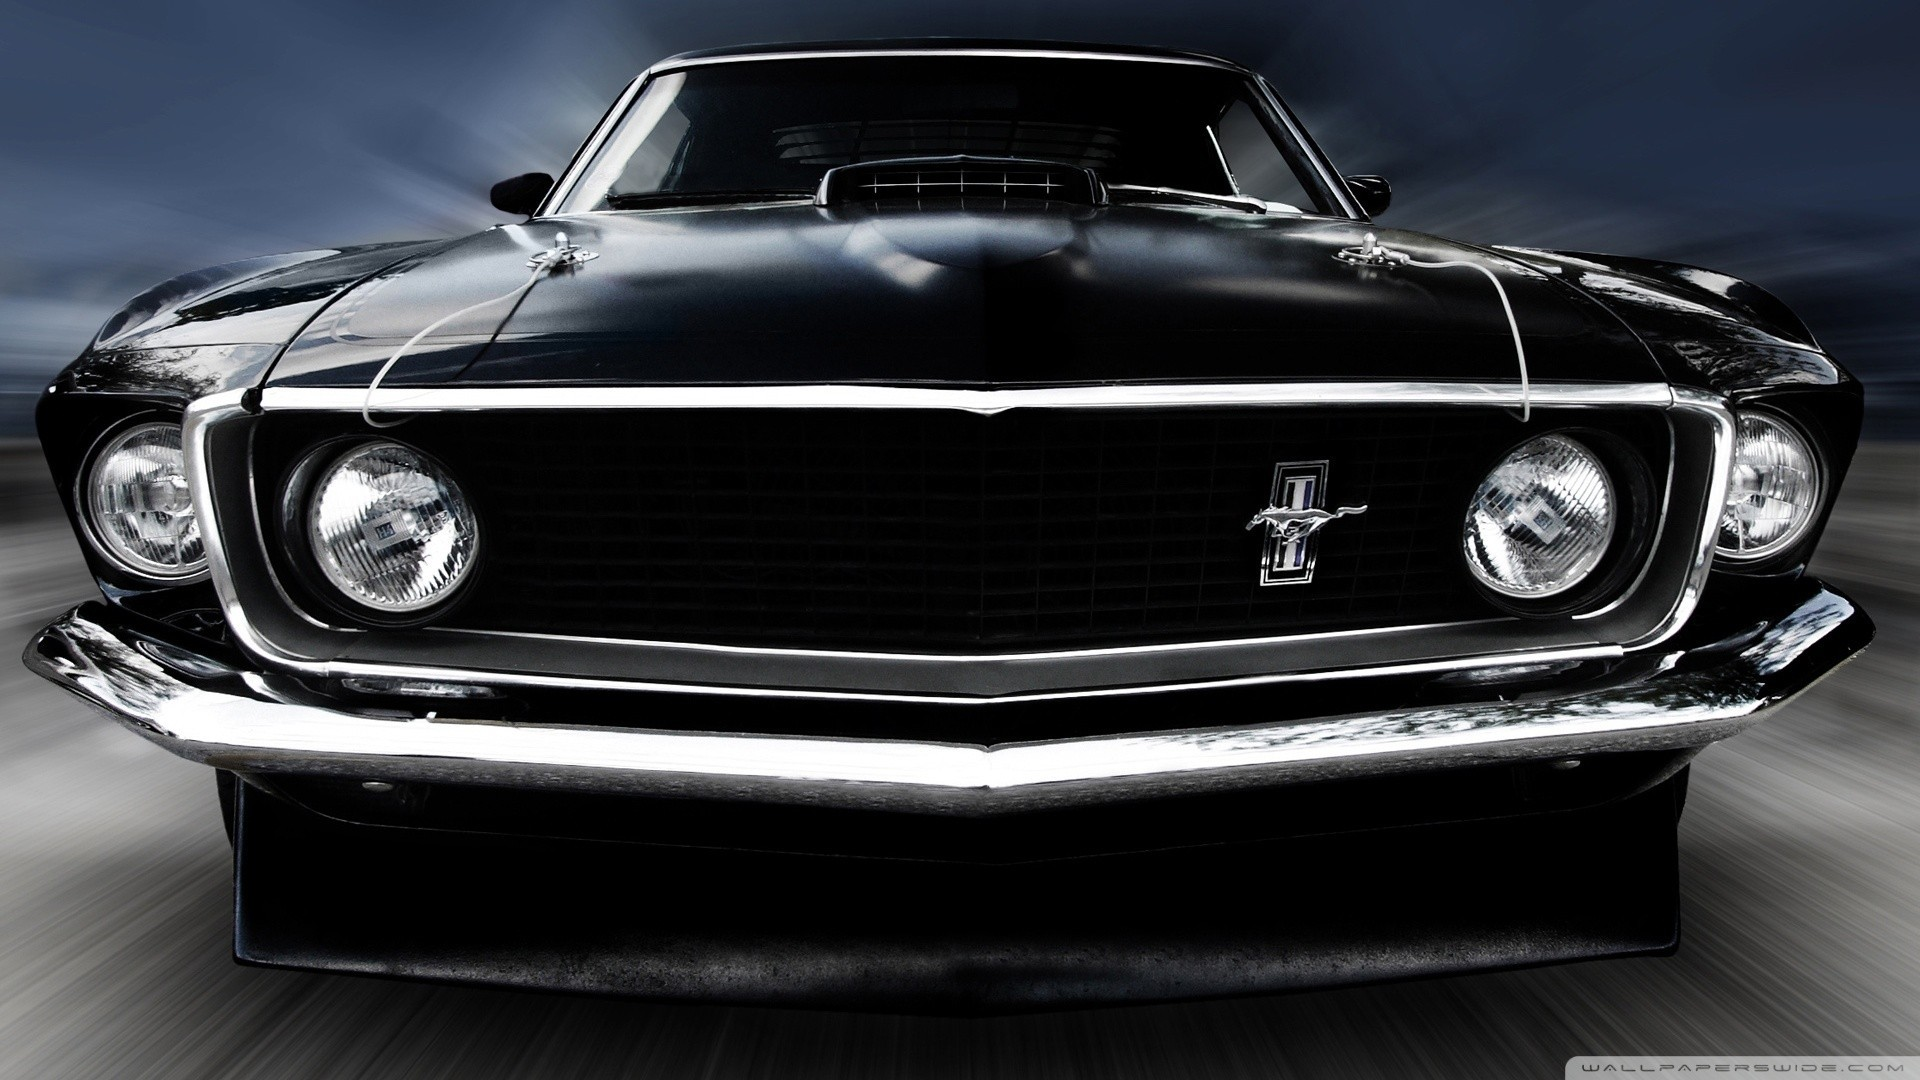 1920x1080 Muscle Car Wallpaper Download 513